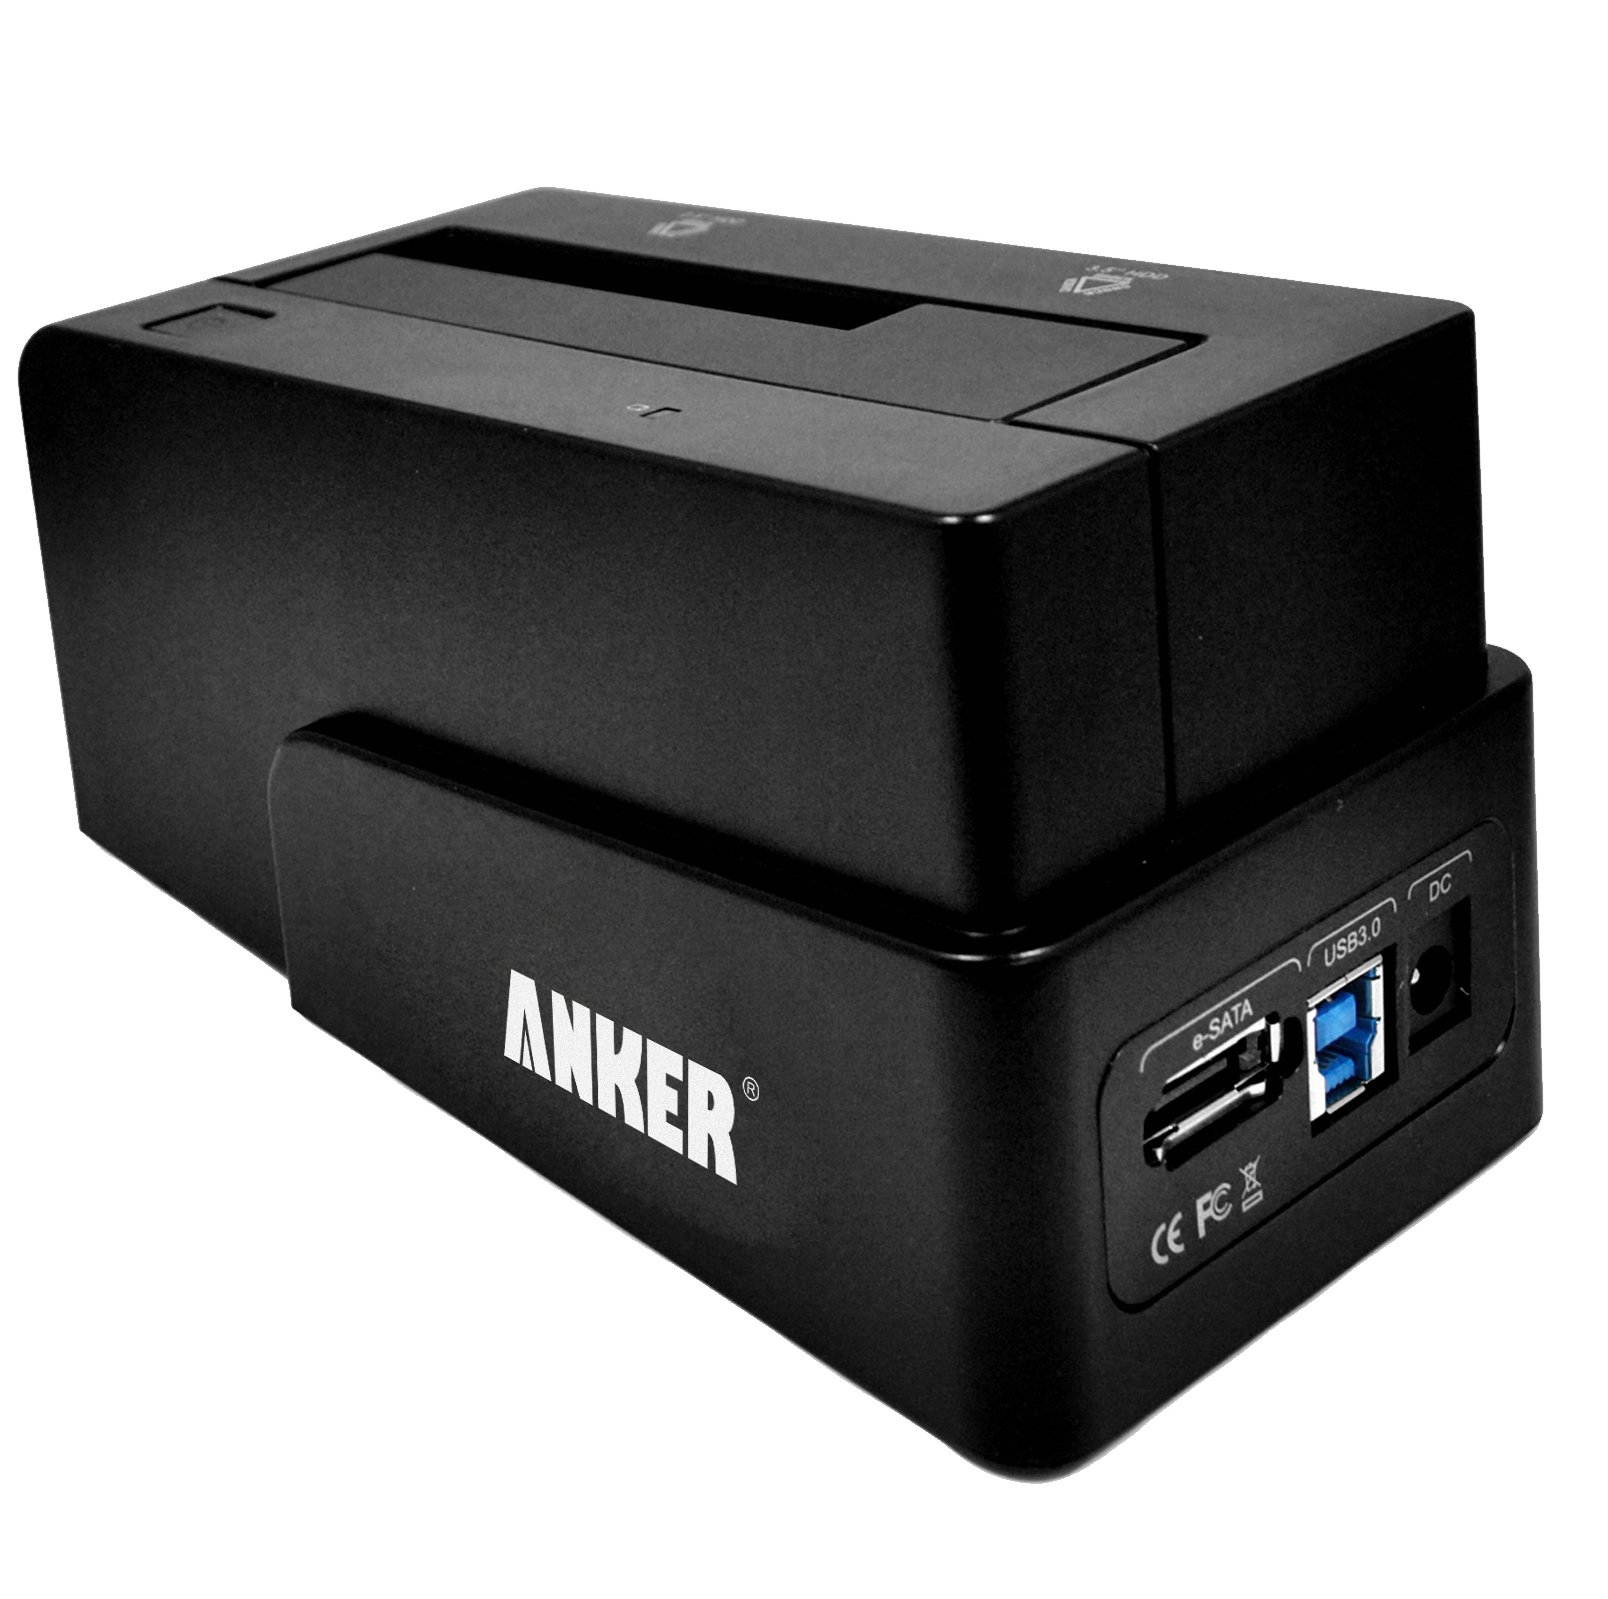 Anker® USB 3.0 & eSATA to SATA External Hard Drive Docking Station for 2.5 o... | eBay